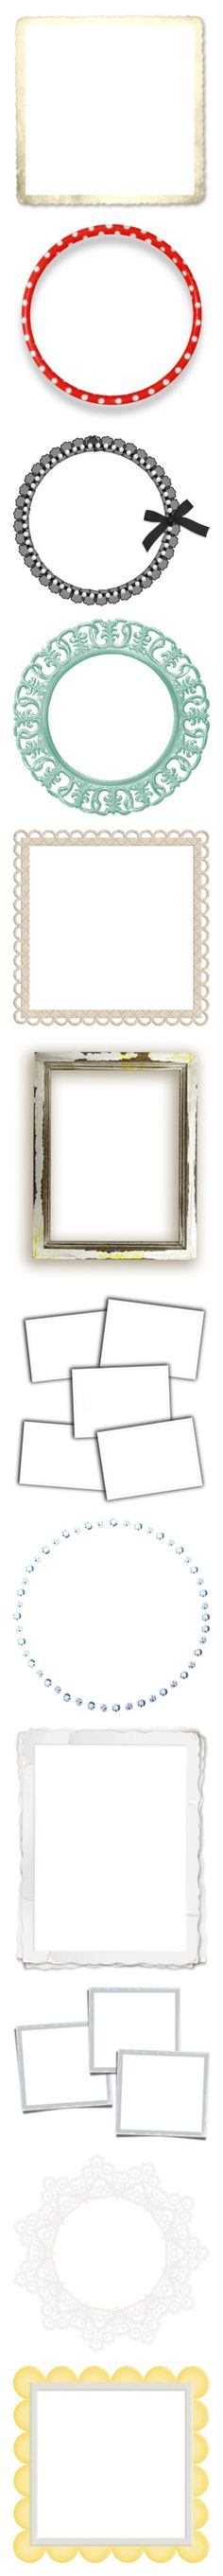 """Frames~"" by tabithahallows ❤ liked on Polyvore featuring home, home decor, frames, backgrounds, borders, picture frames, square frames, square picture frames, circle and circular"